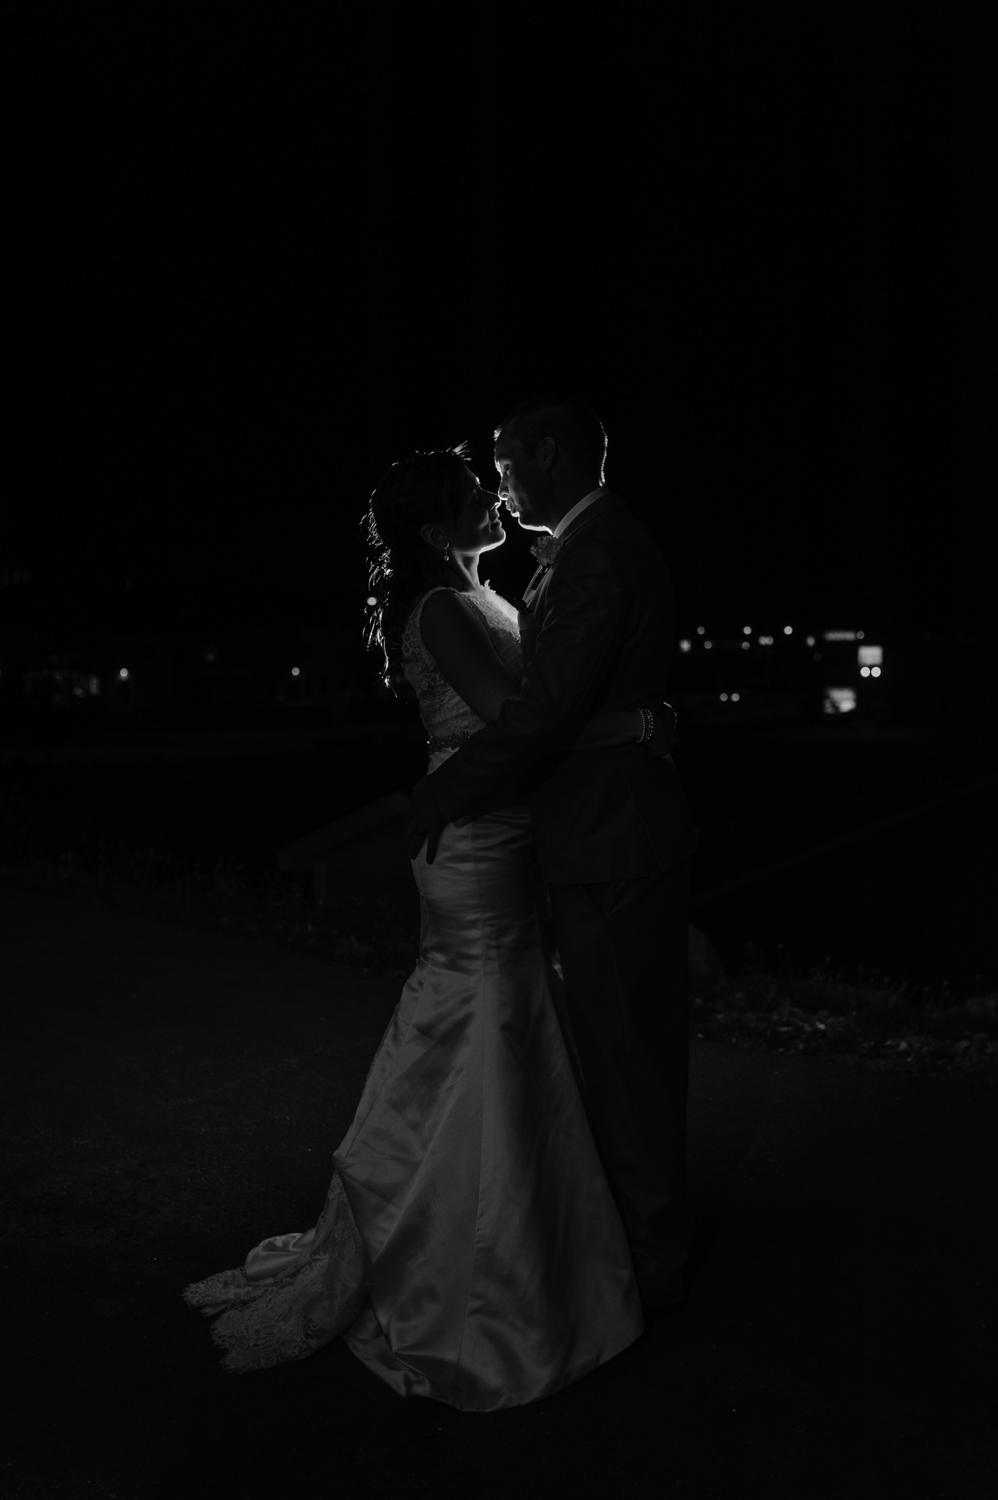 last wedding shot